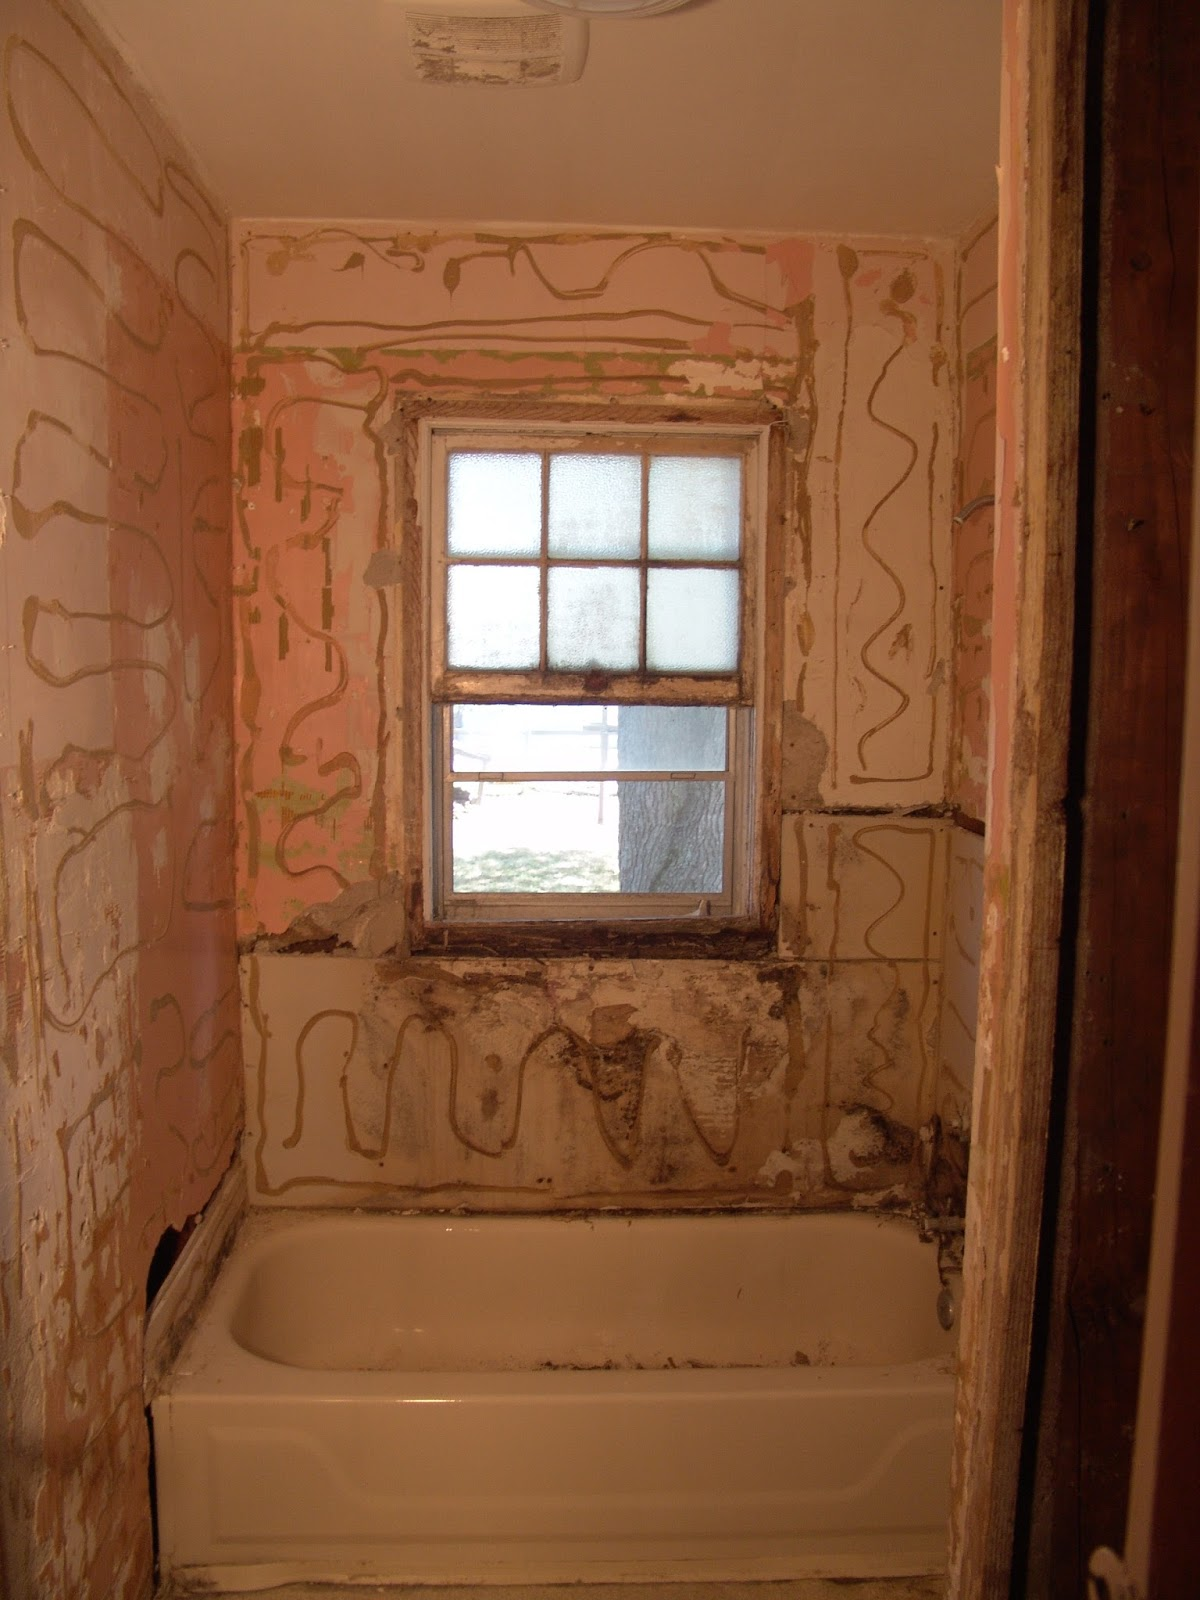 Bathroom Remodel For Old Houses. this old house bathroom